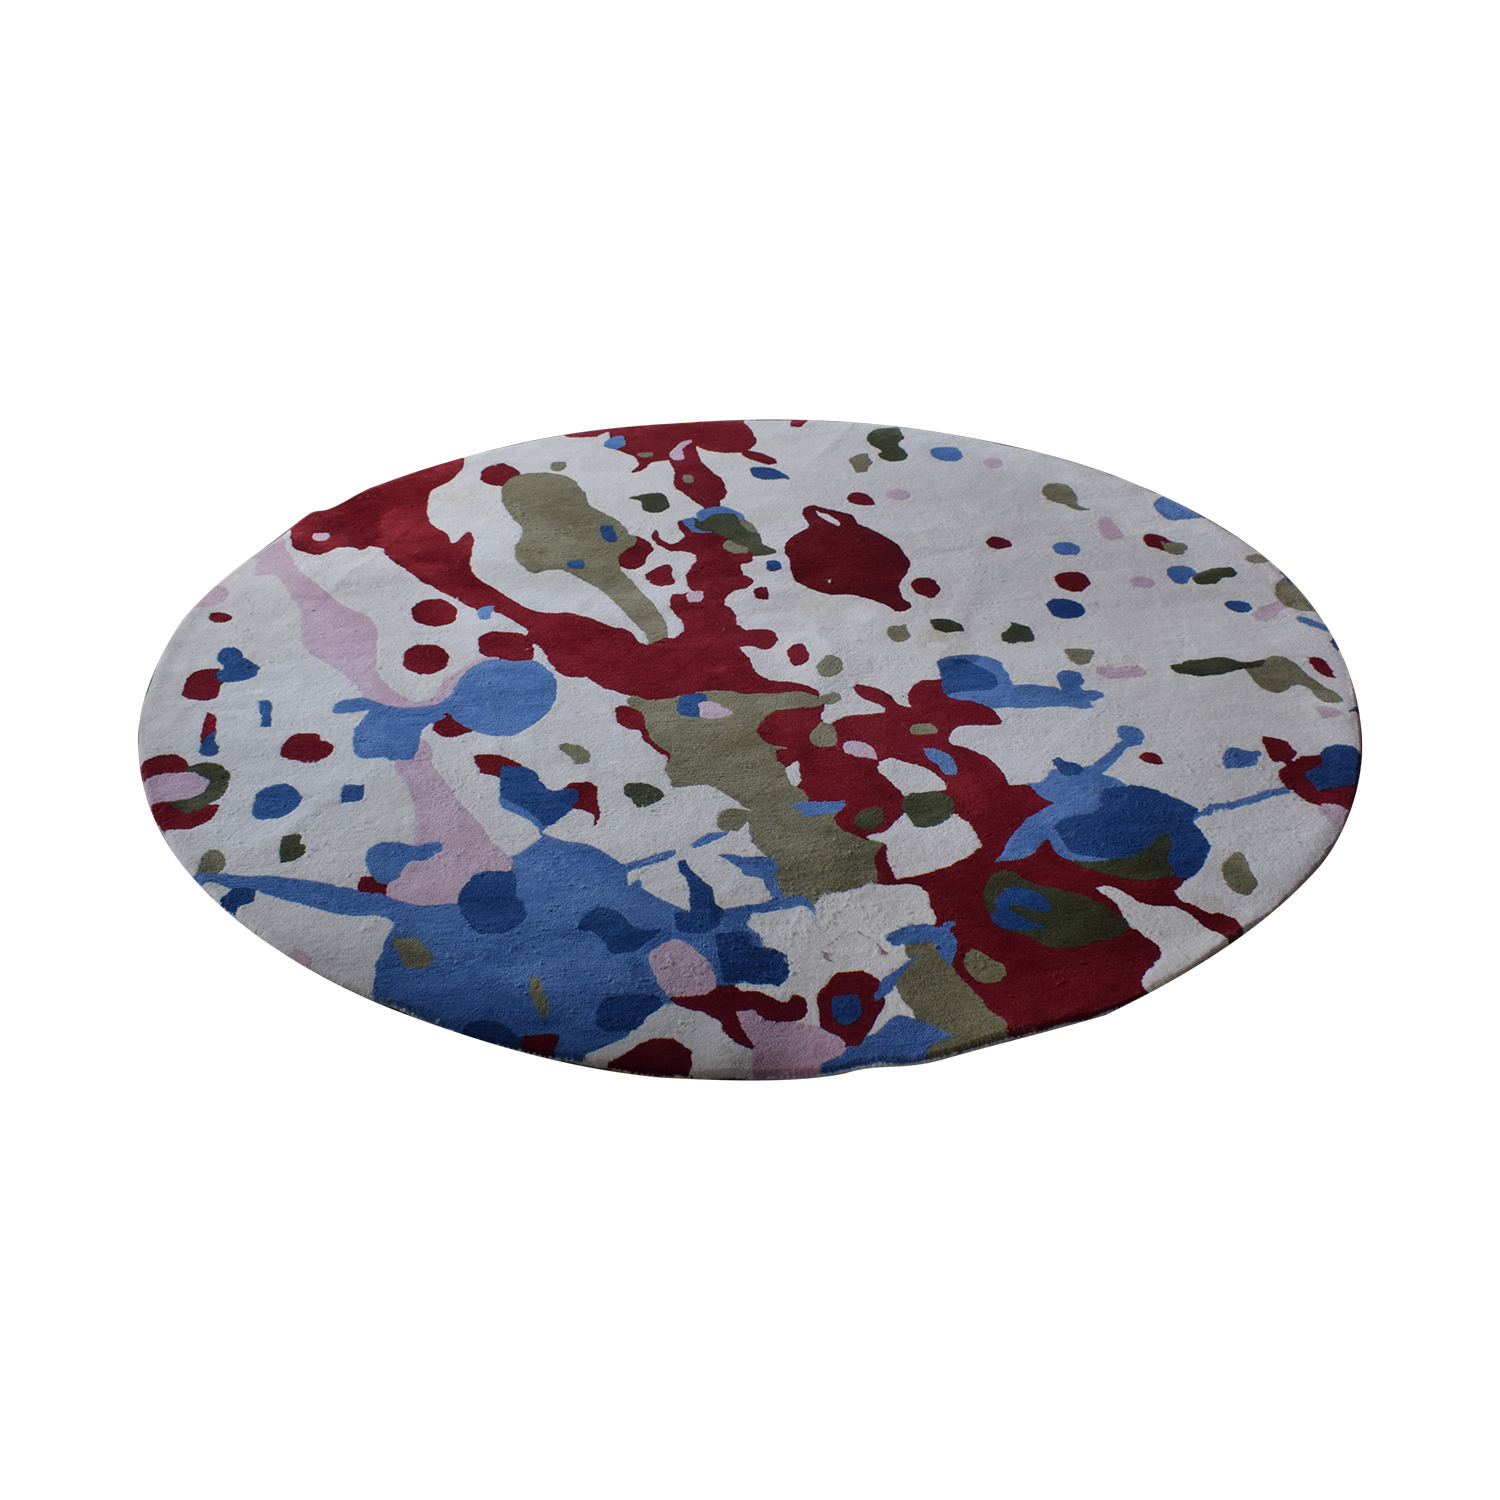 Obeetee Obeetee Round Multi-Colored Hand Tufted Rug nyc